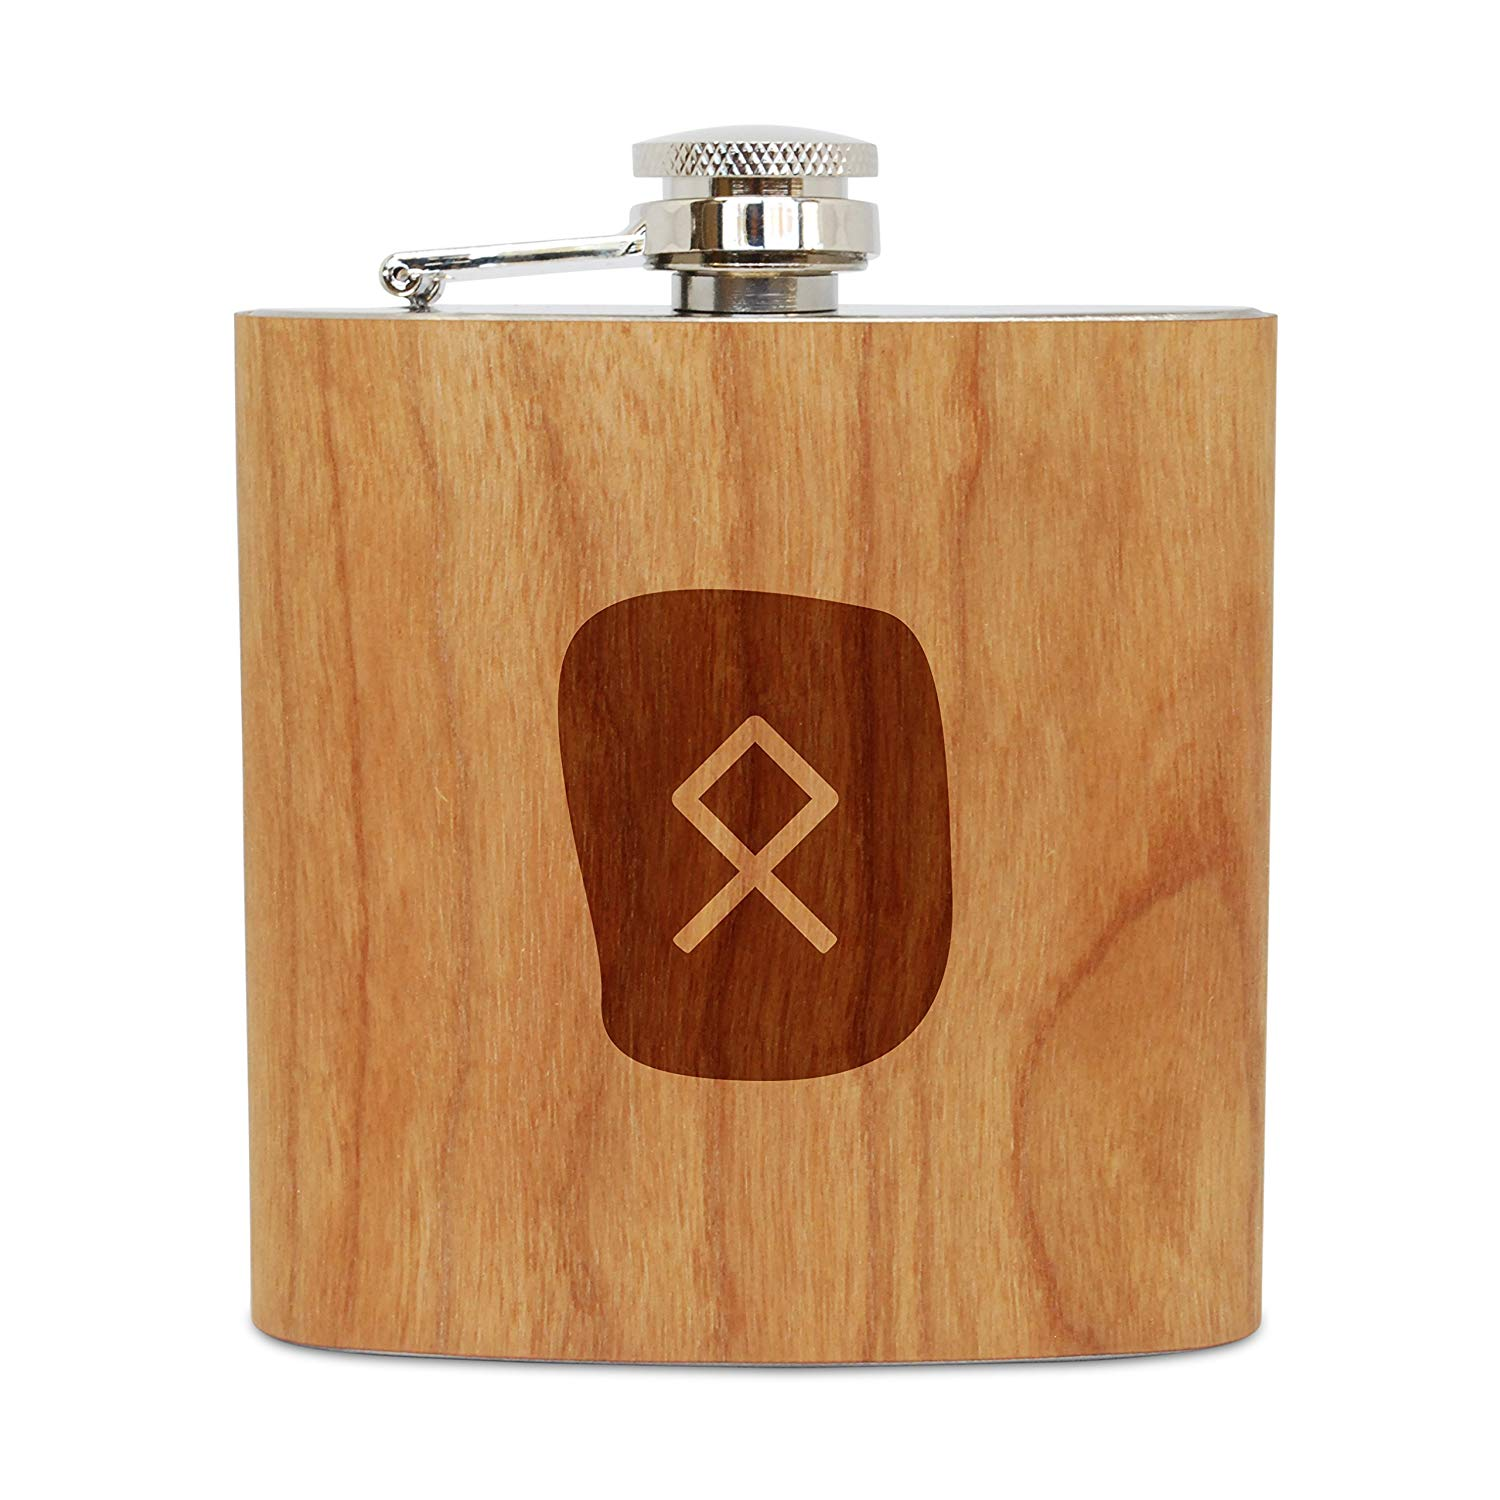 WOODEN ACCESSORIES COMPANY Cherry Wood Flask With Stainless Steel Body - Laser Engraved Flask With Rune Othila Design - 6 Oz Wood Hip Flask Handmade In USA